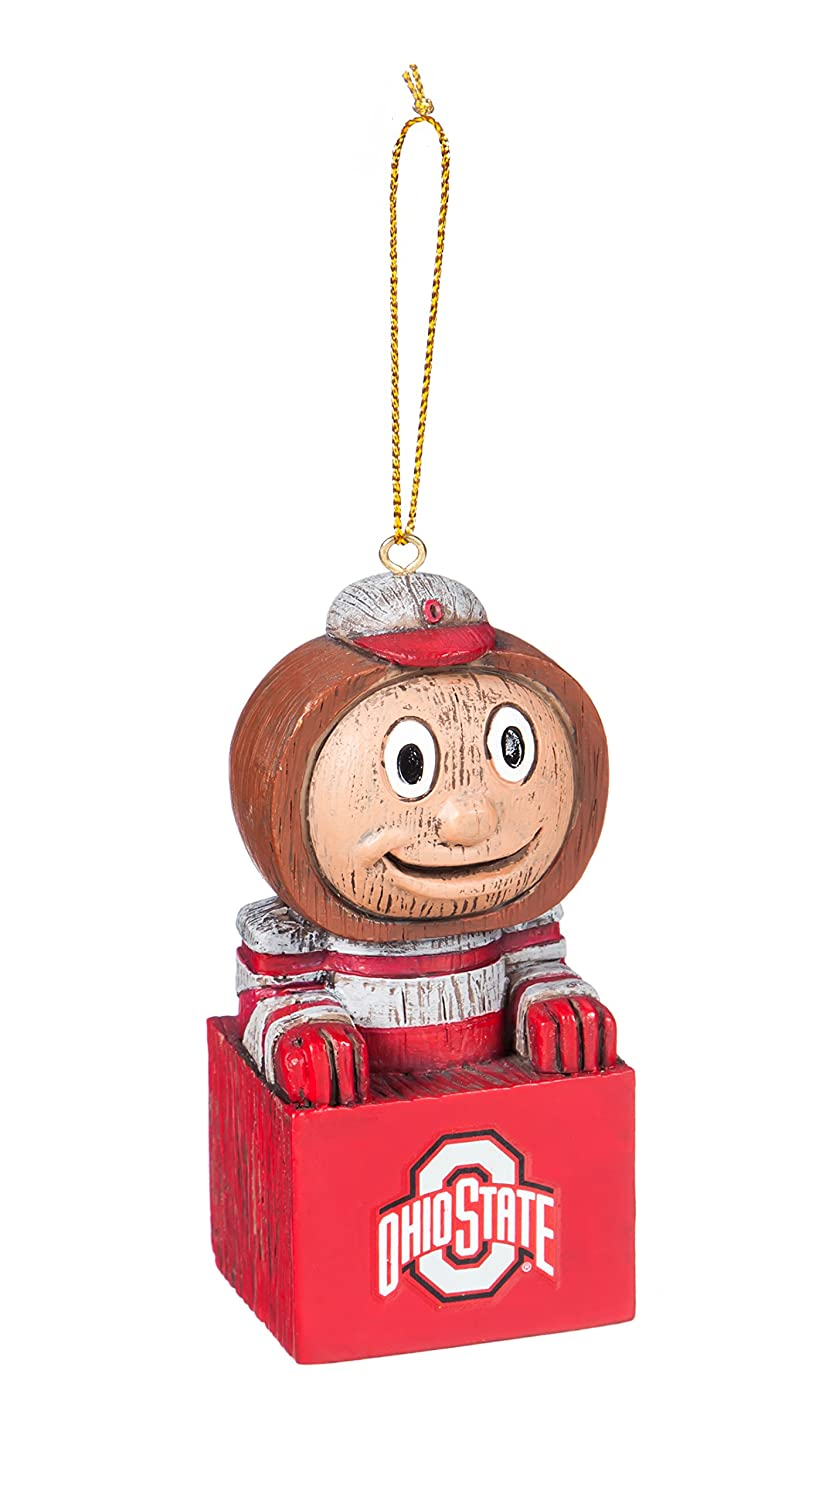 Team Sports America Ohio State Buckeyes Team Mascot Ornament